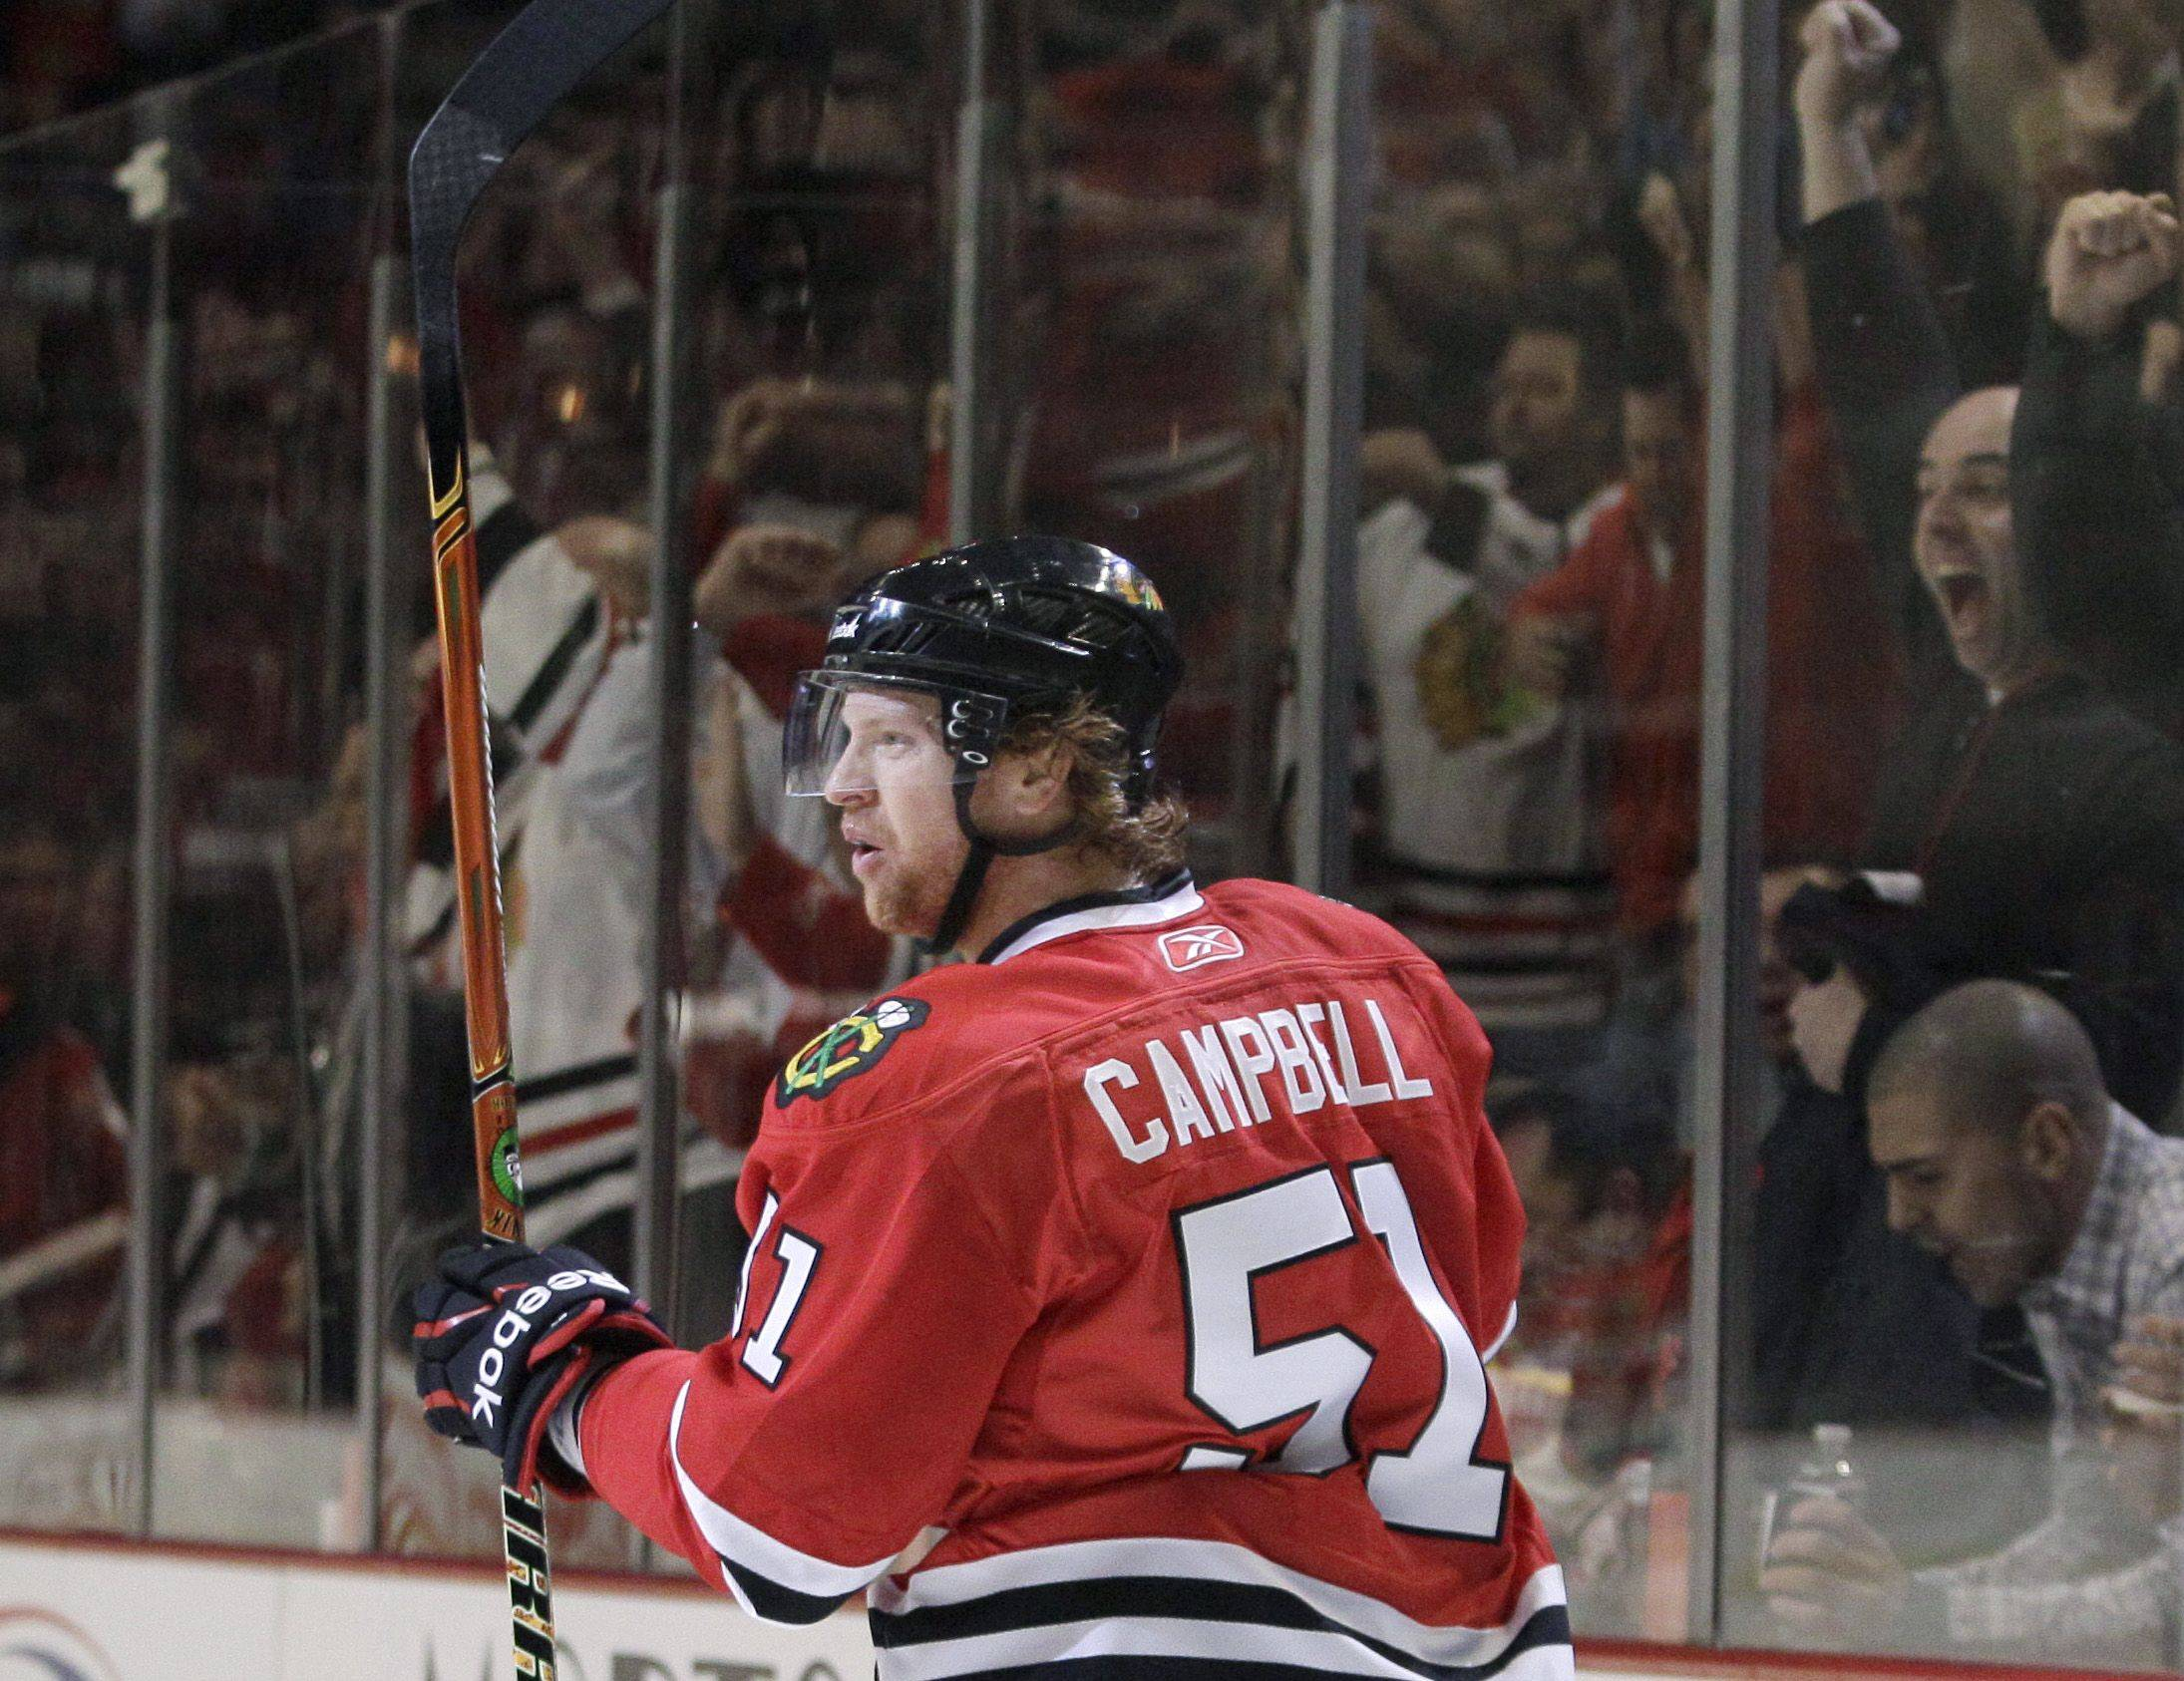 Chicago Blackhawks defenseman Brian Campbell reacts after scoring a goal during the second period in Game 4 of an NHL hockey Stanley Cup playoffs first-round series against the Vancouver Canucks on Tuesday, April 19, 2011, in Chicago.